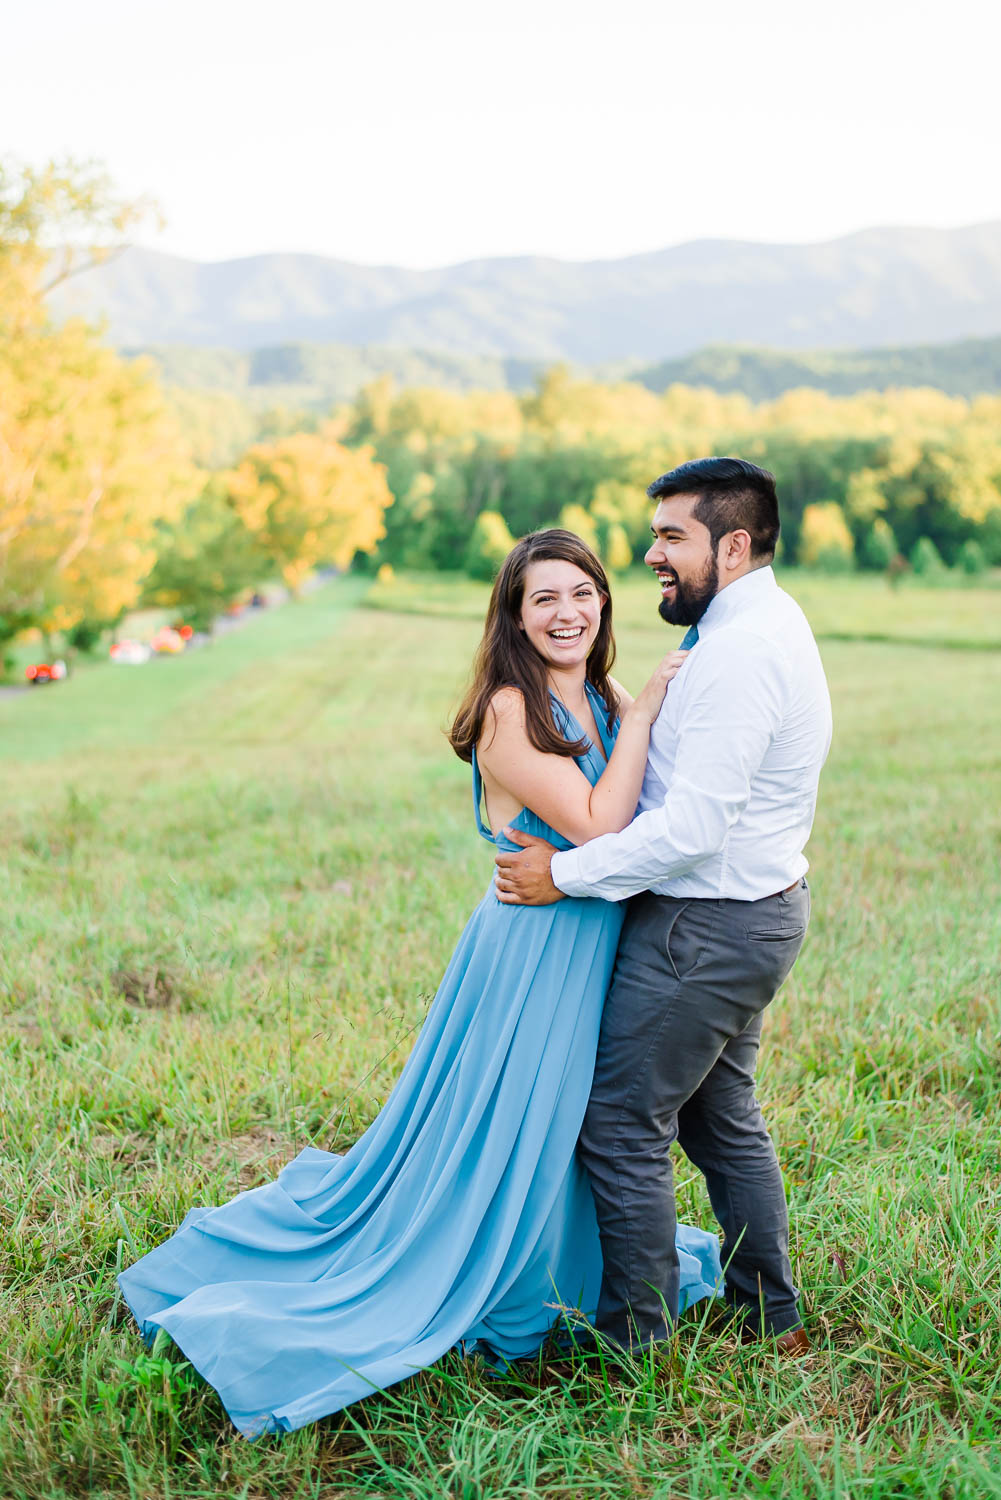 girl wearing blue dress from Lulus and guy wearing white shirt and gray pants